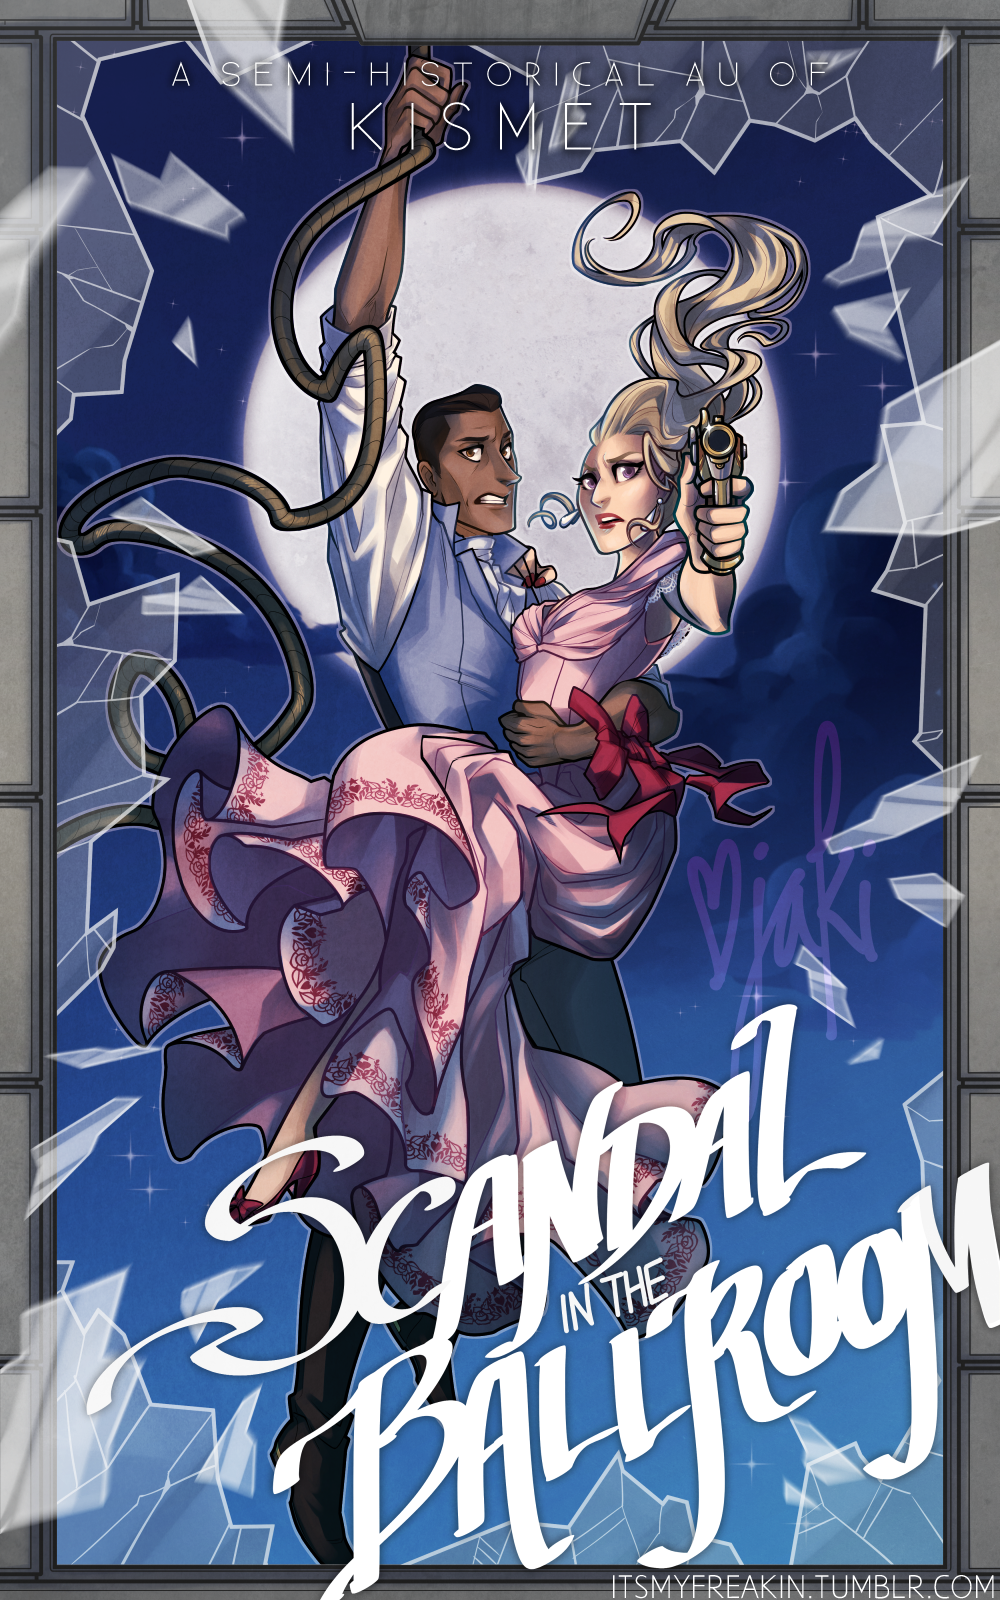 Scandal in the Ballroom